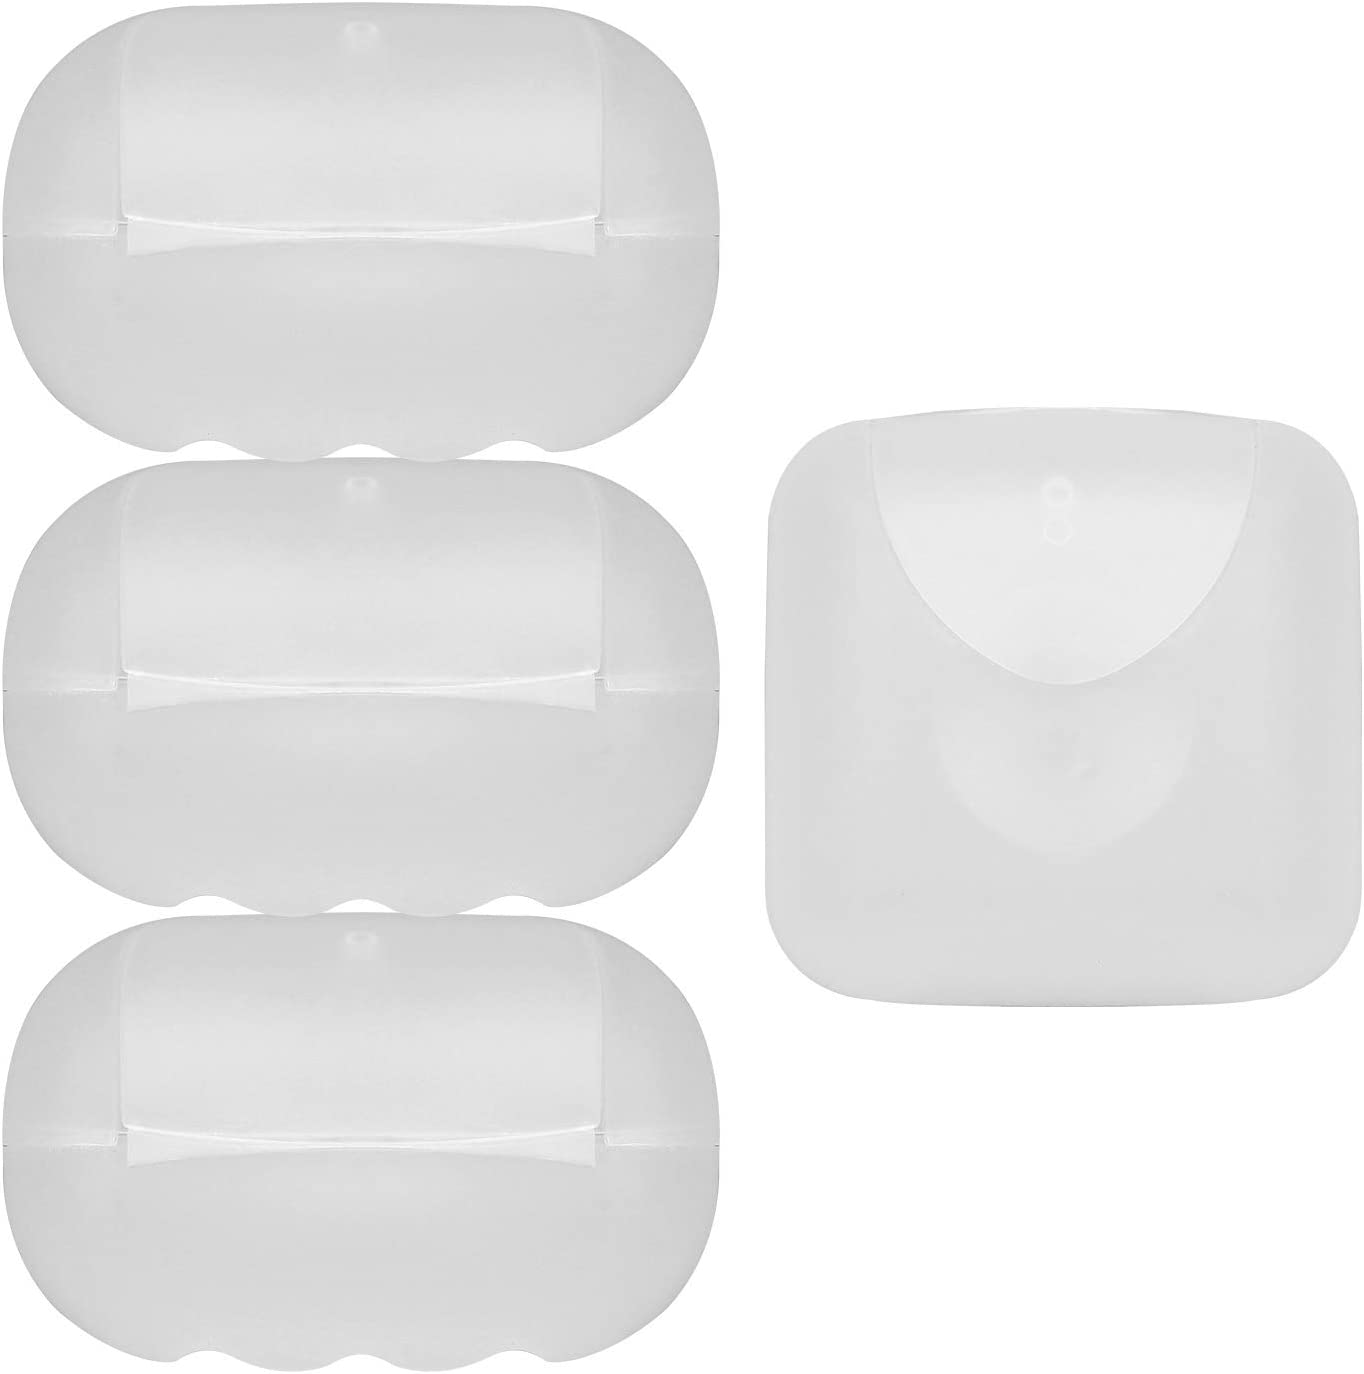 Vonpri Small Soap Box Holder, Soap Dish Soap Savers Case Container for Bathroom Camping Gym (4 Pack Clear)